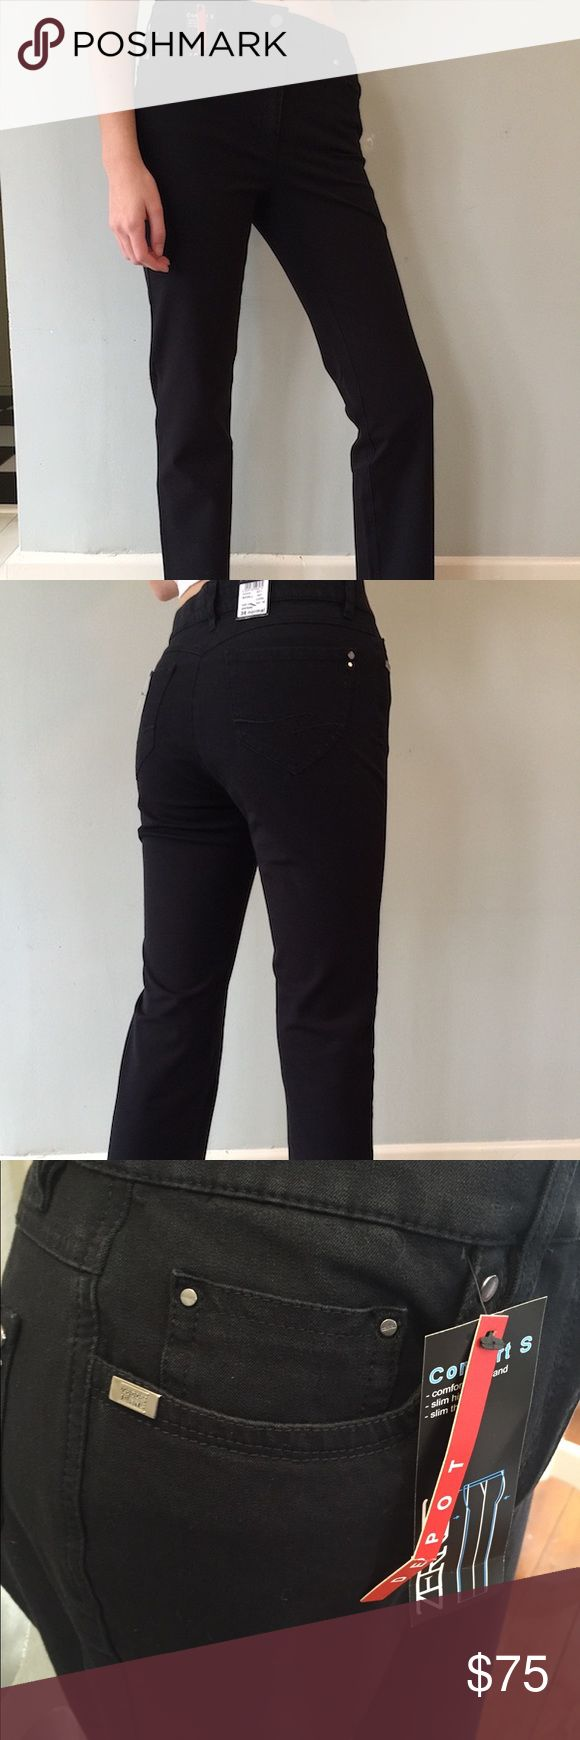 """Zerres Women's Jeans in Black The Cora style of Zerres Women's Jeans in solid black.  Straight let in a lightweight and soft denim.  32"""" inseam. Zerres Jeans Straight Leg"""